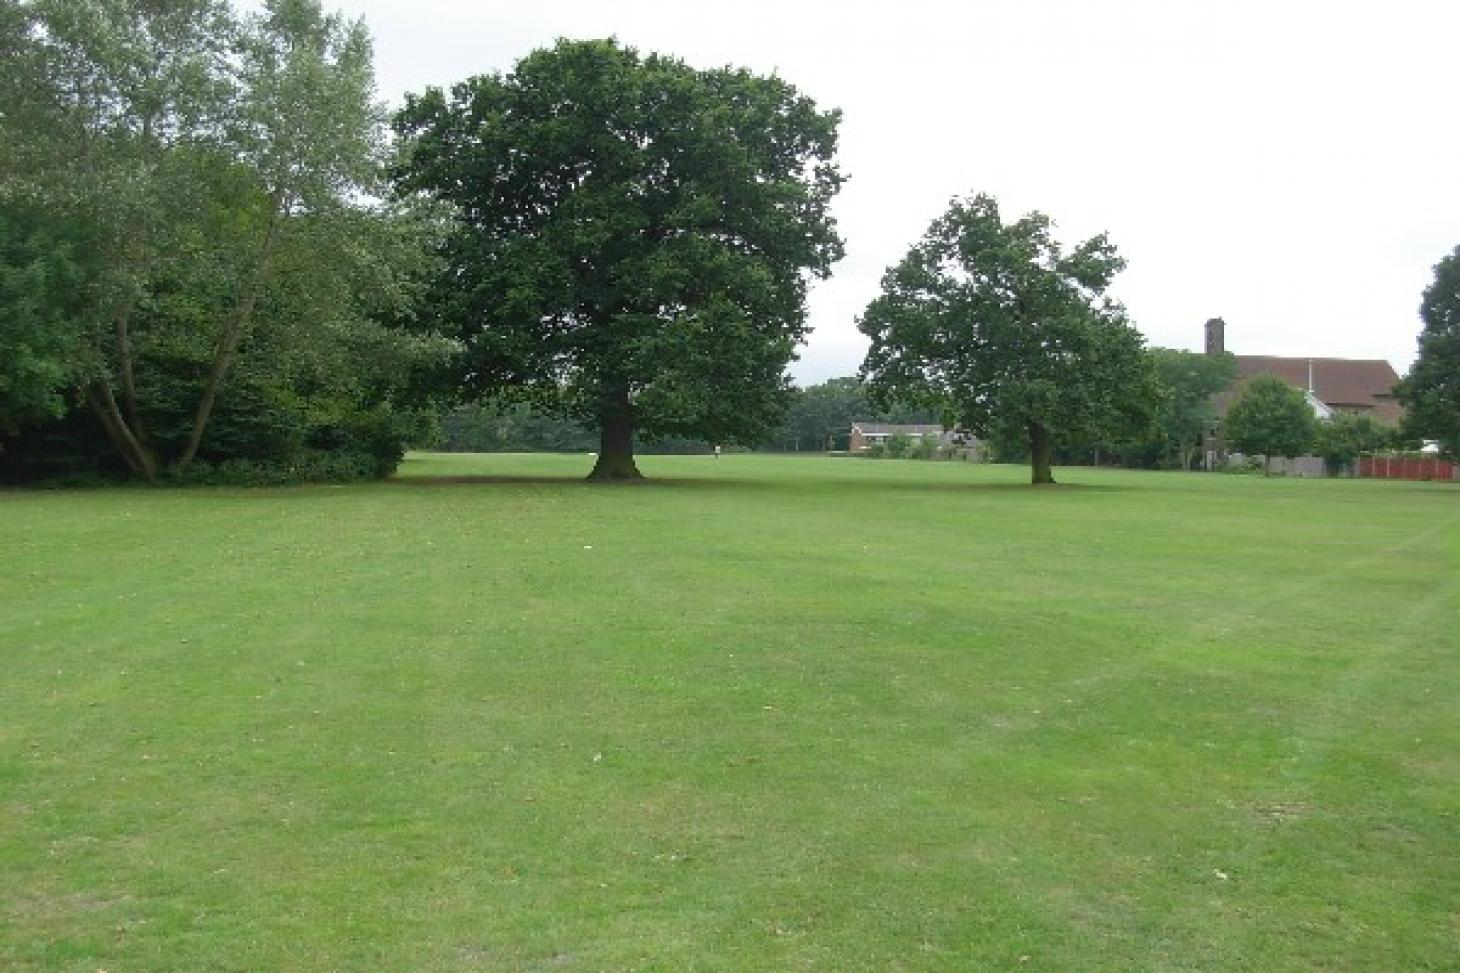 Harvington Playing Fields 11 a side | Grass football pitch